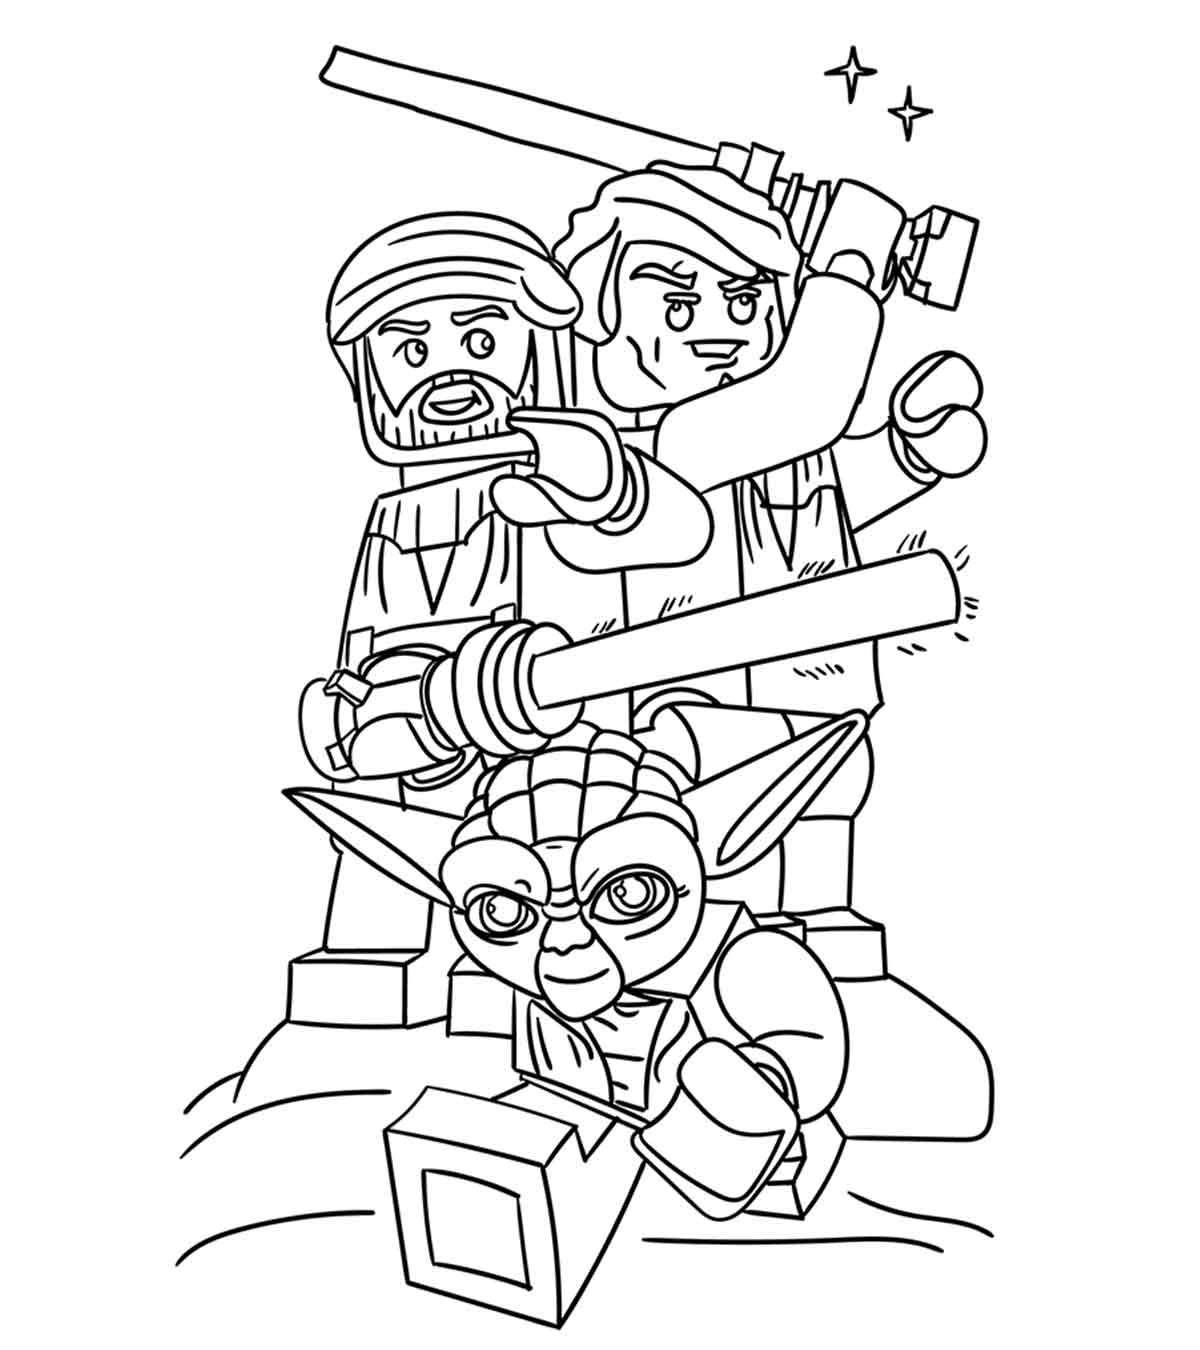 Lego Movie Color Pages 25 Wonderful Lego Movie Coloring Pages For Toddlers